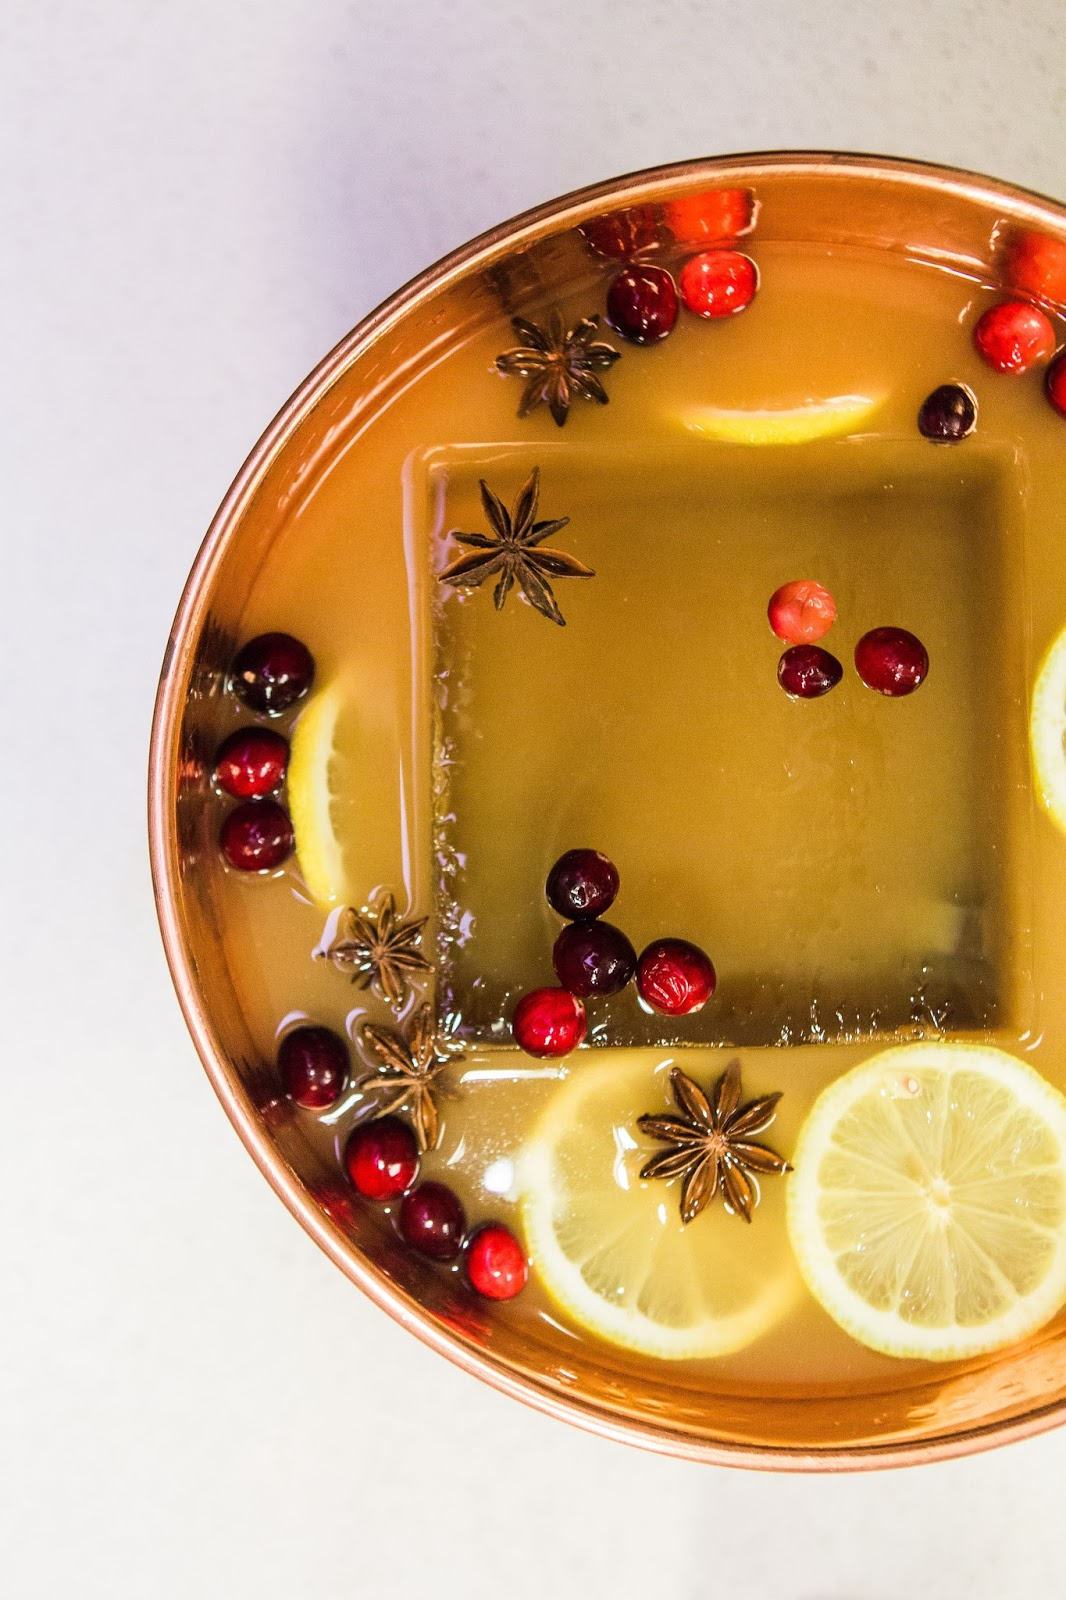 whaling club cocktail, whiskey cocktail recipe, holiday party ideas